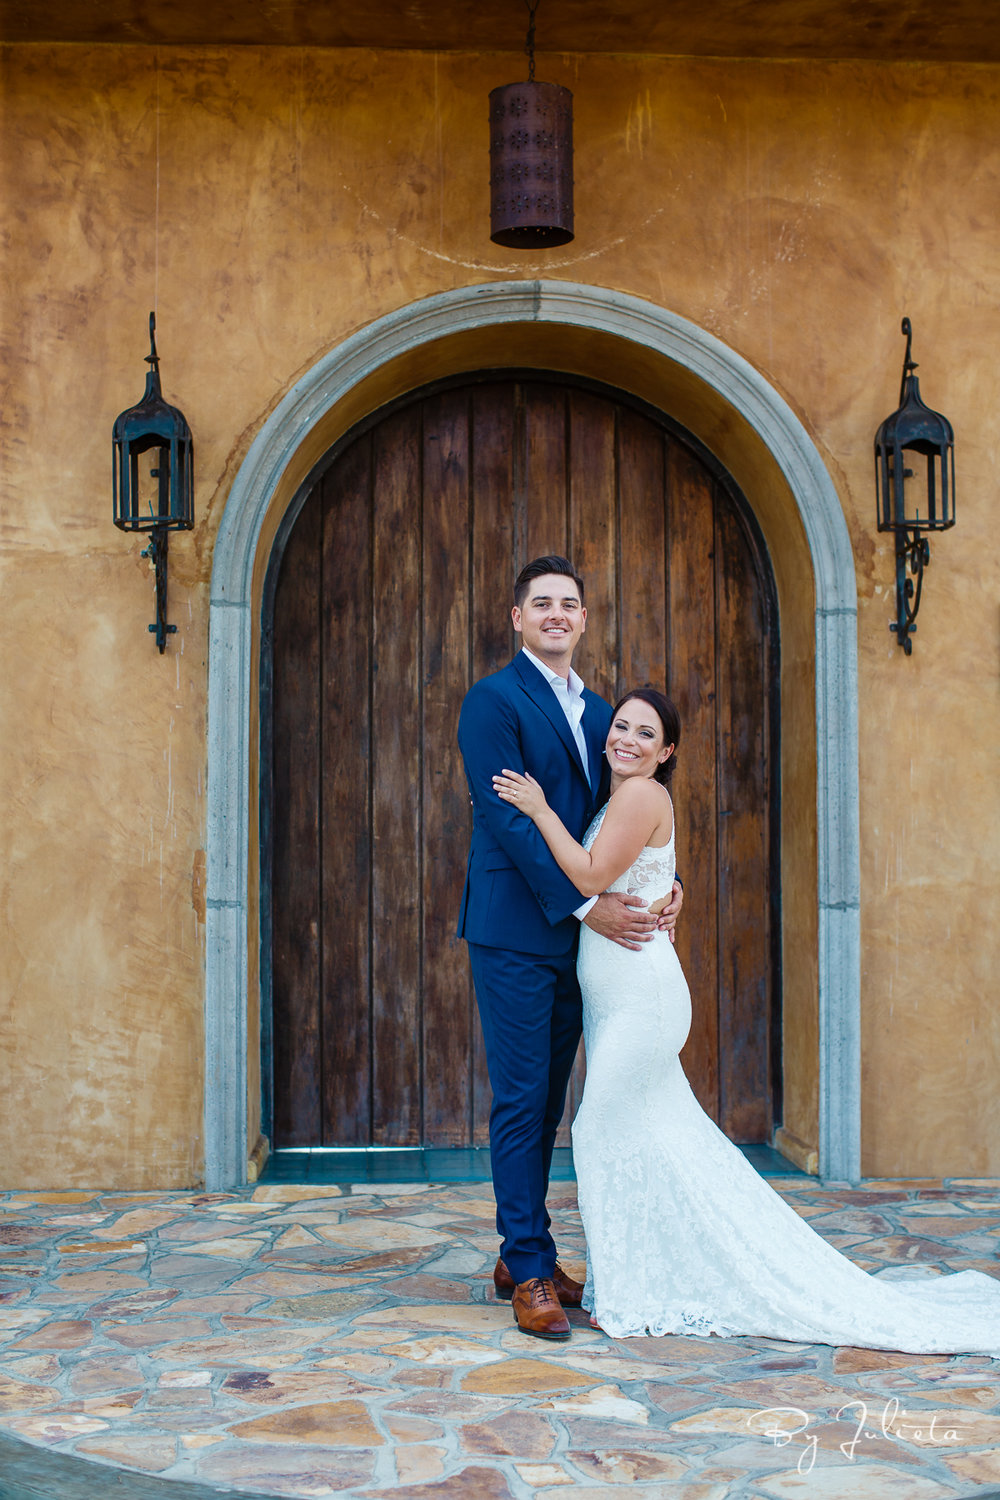 Villa Santa Cruz Wedding. Kiva and David. Julieta Amezcua Photography. LR. (184 of 805).jpg